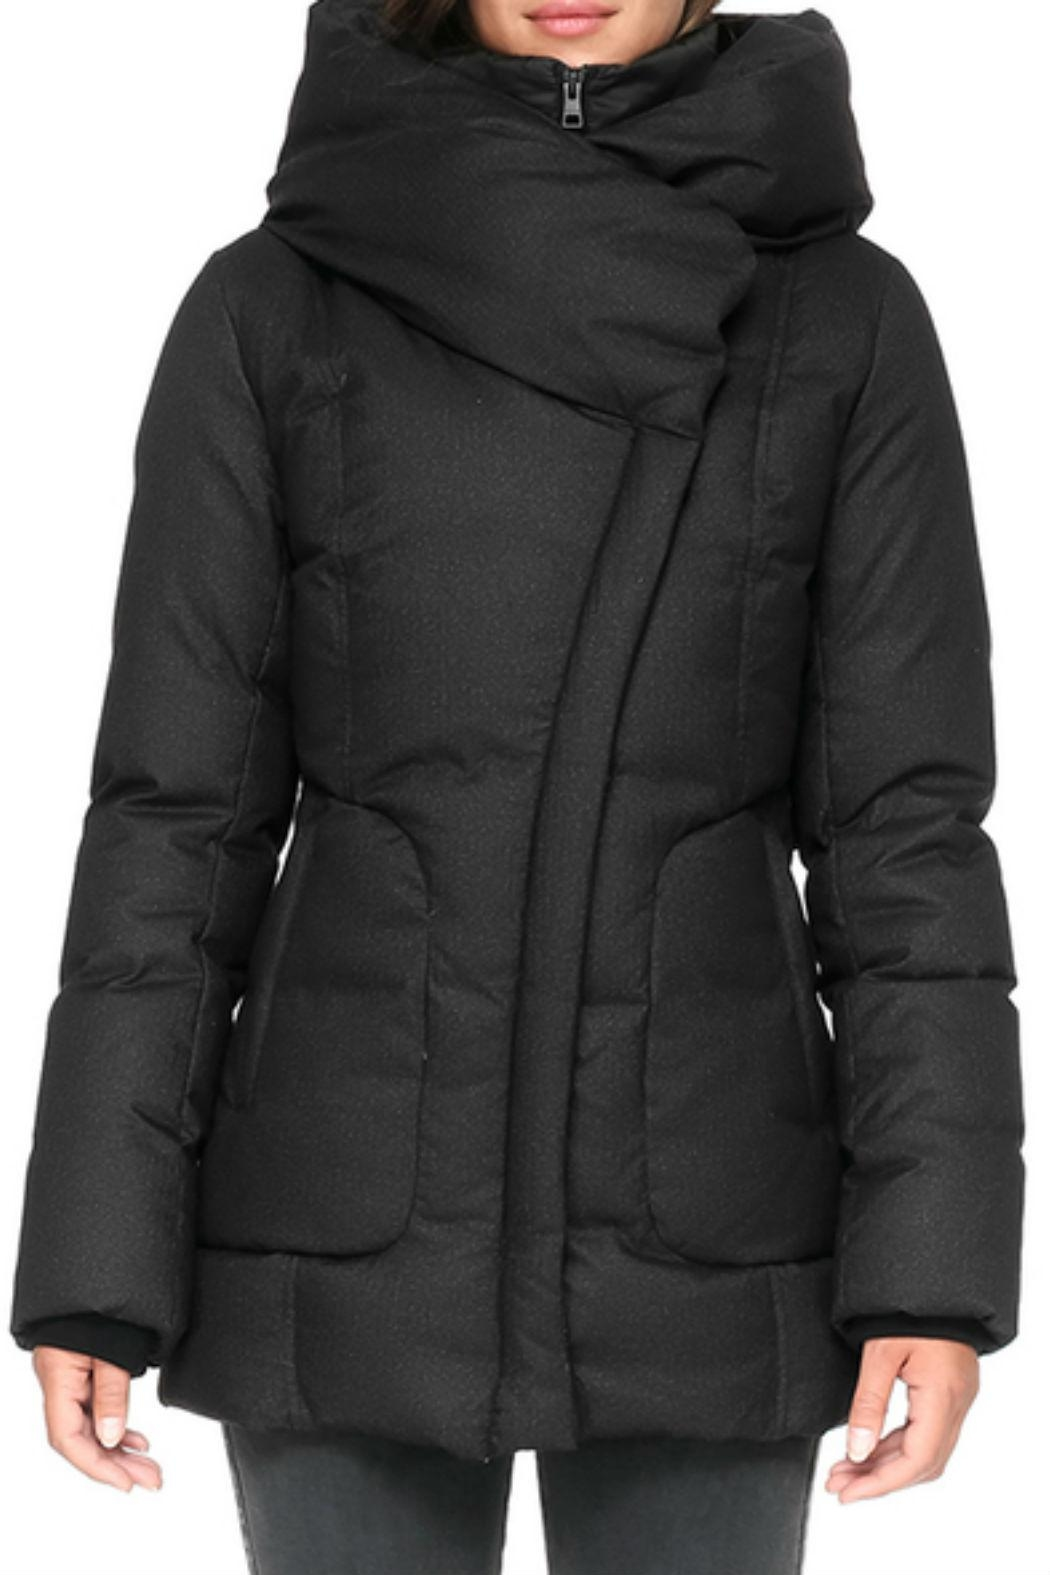 Soia & Kyo Felycia Down Coat - Front Cropped Image